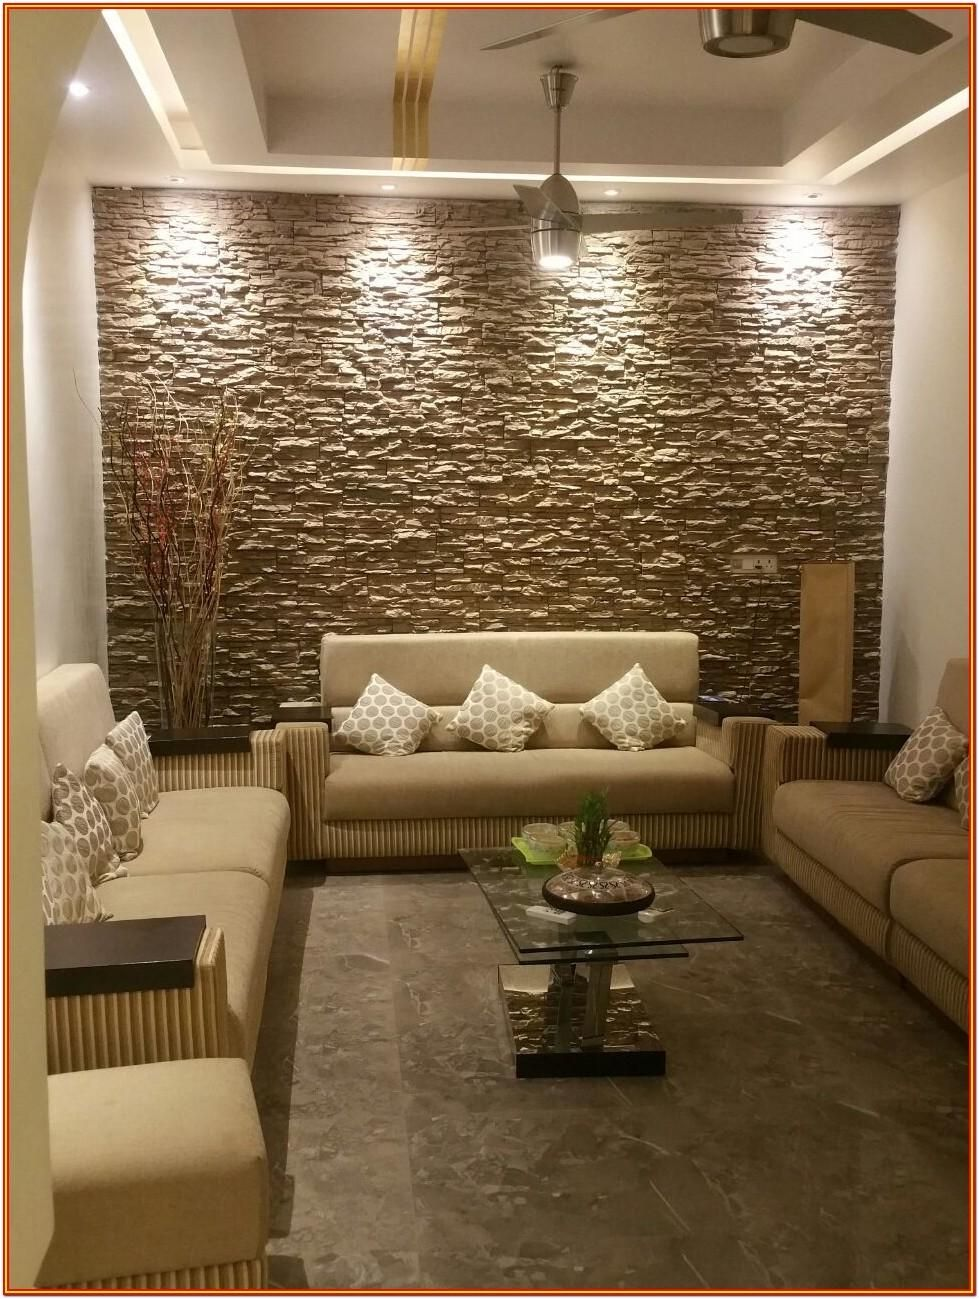 Decorative Wall Tiles Living Room India By Lori Morales J This